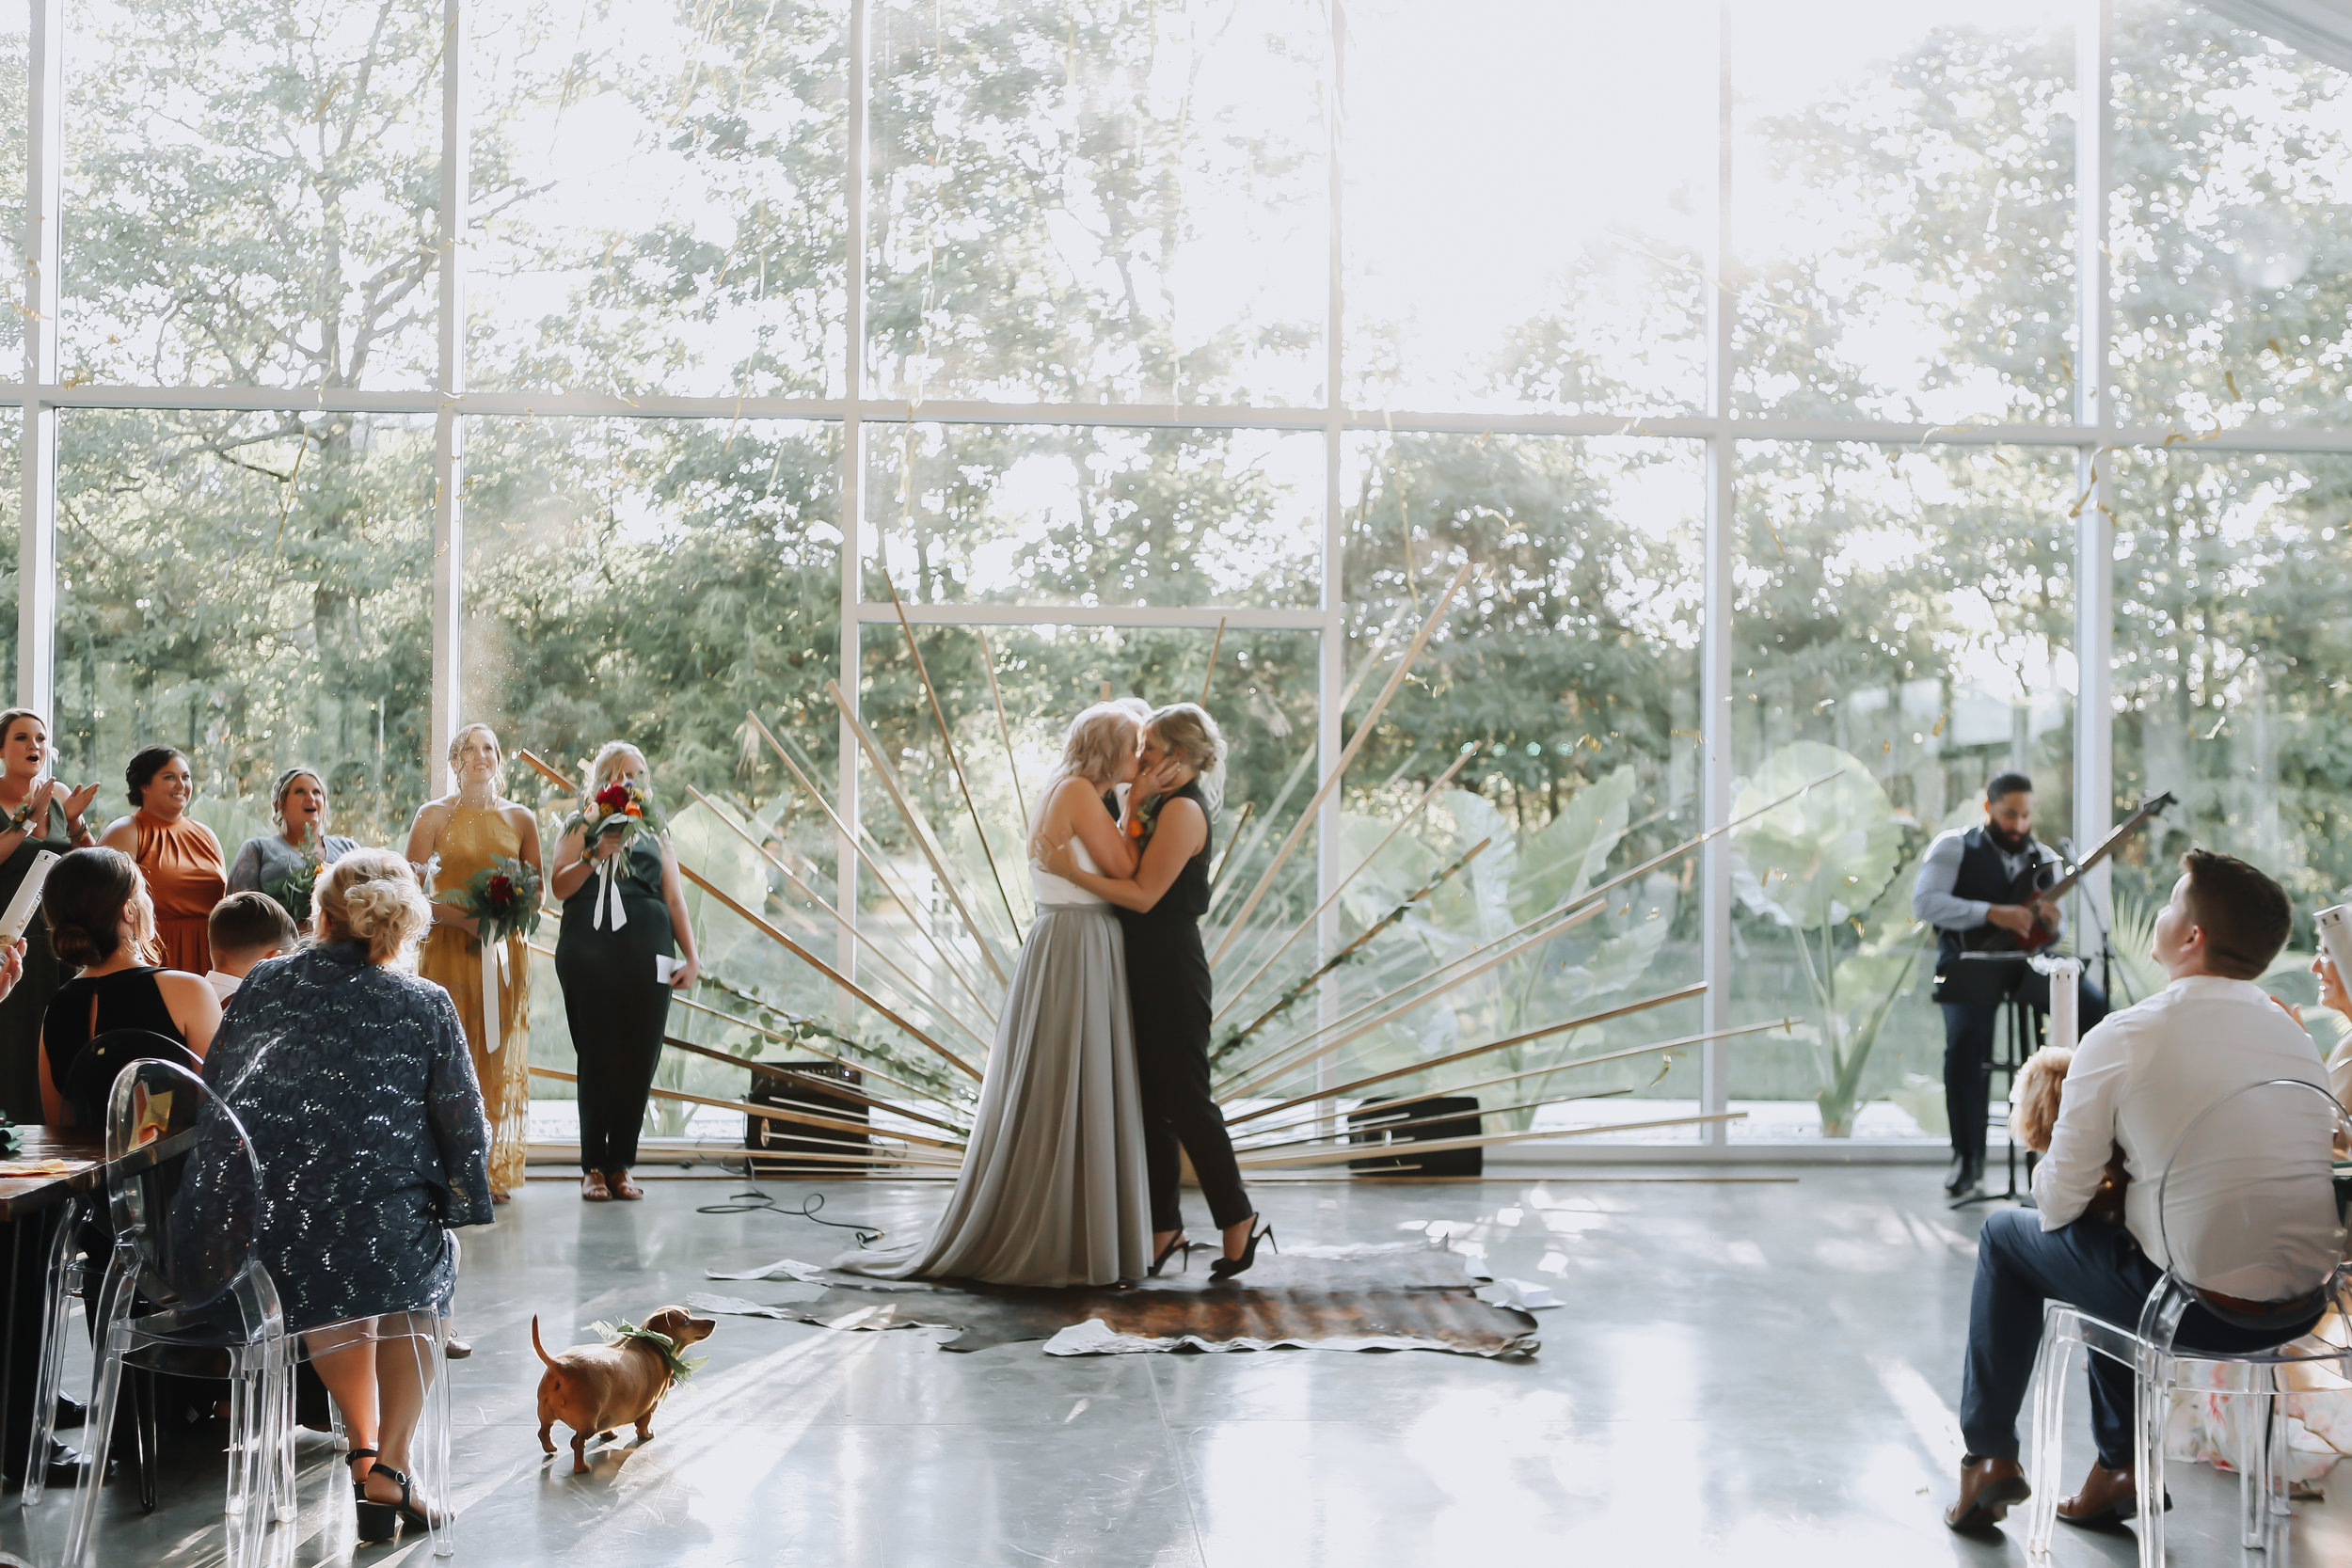 Natalee and Felicia have fun celebrating with their family and friends since their wedding planner took care of all the details.